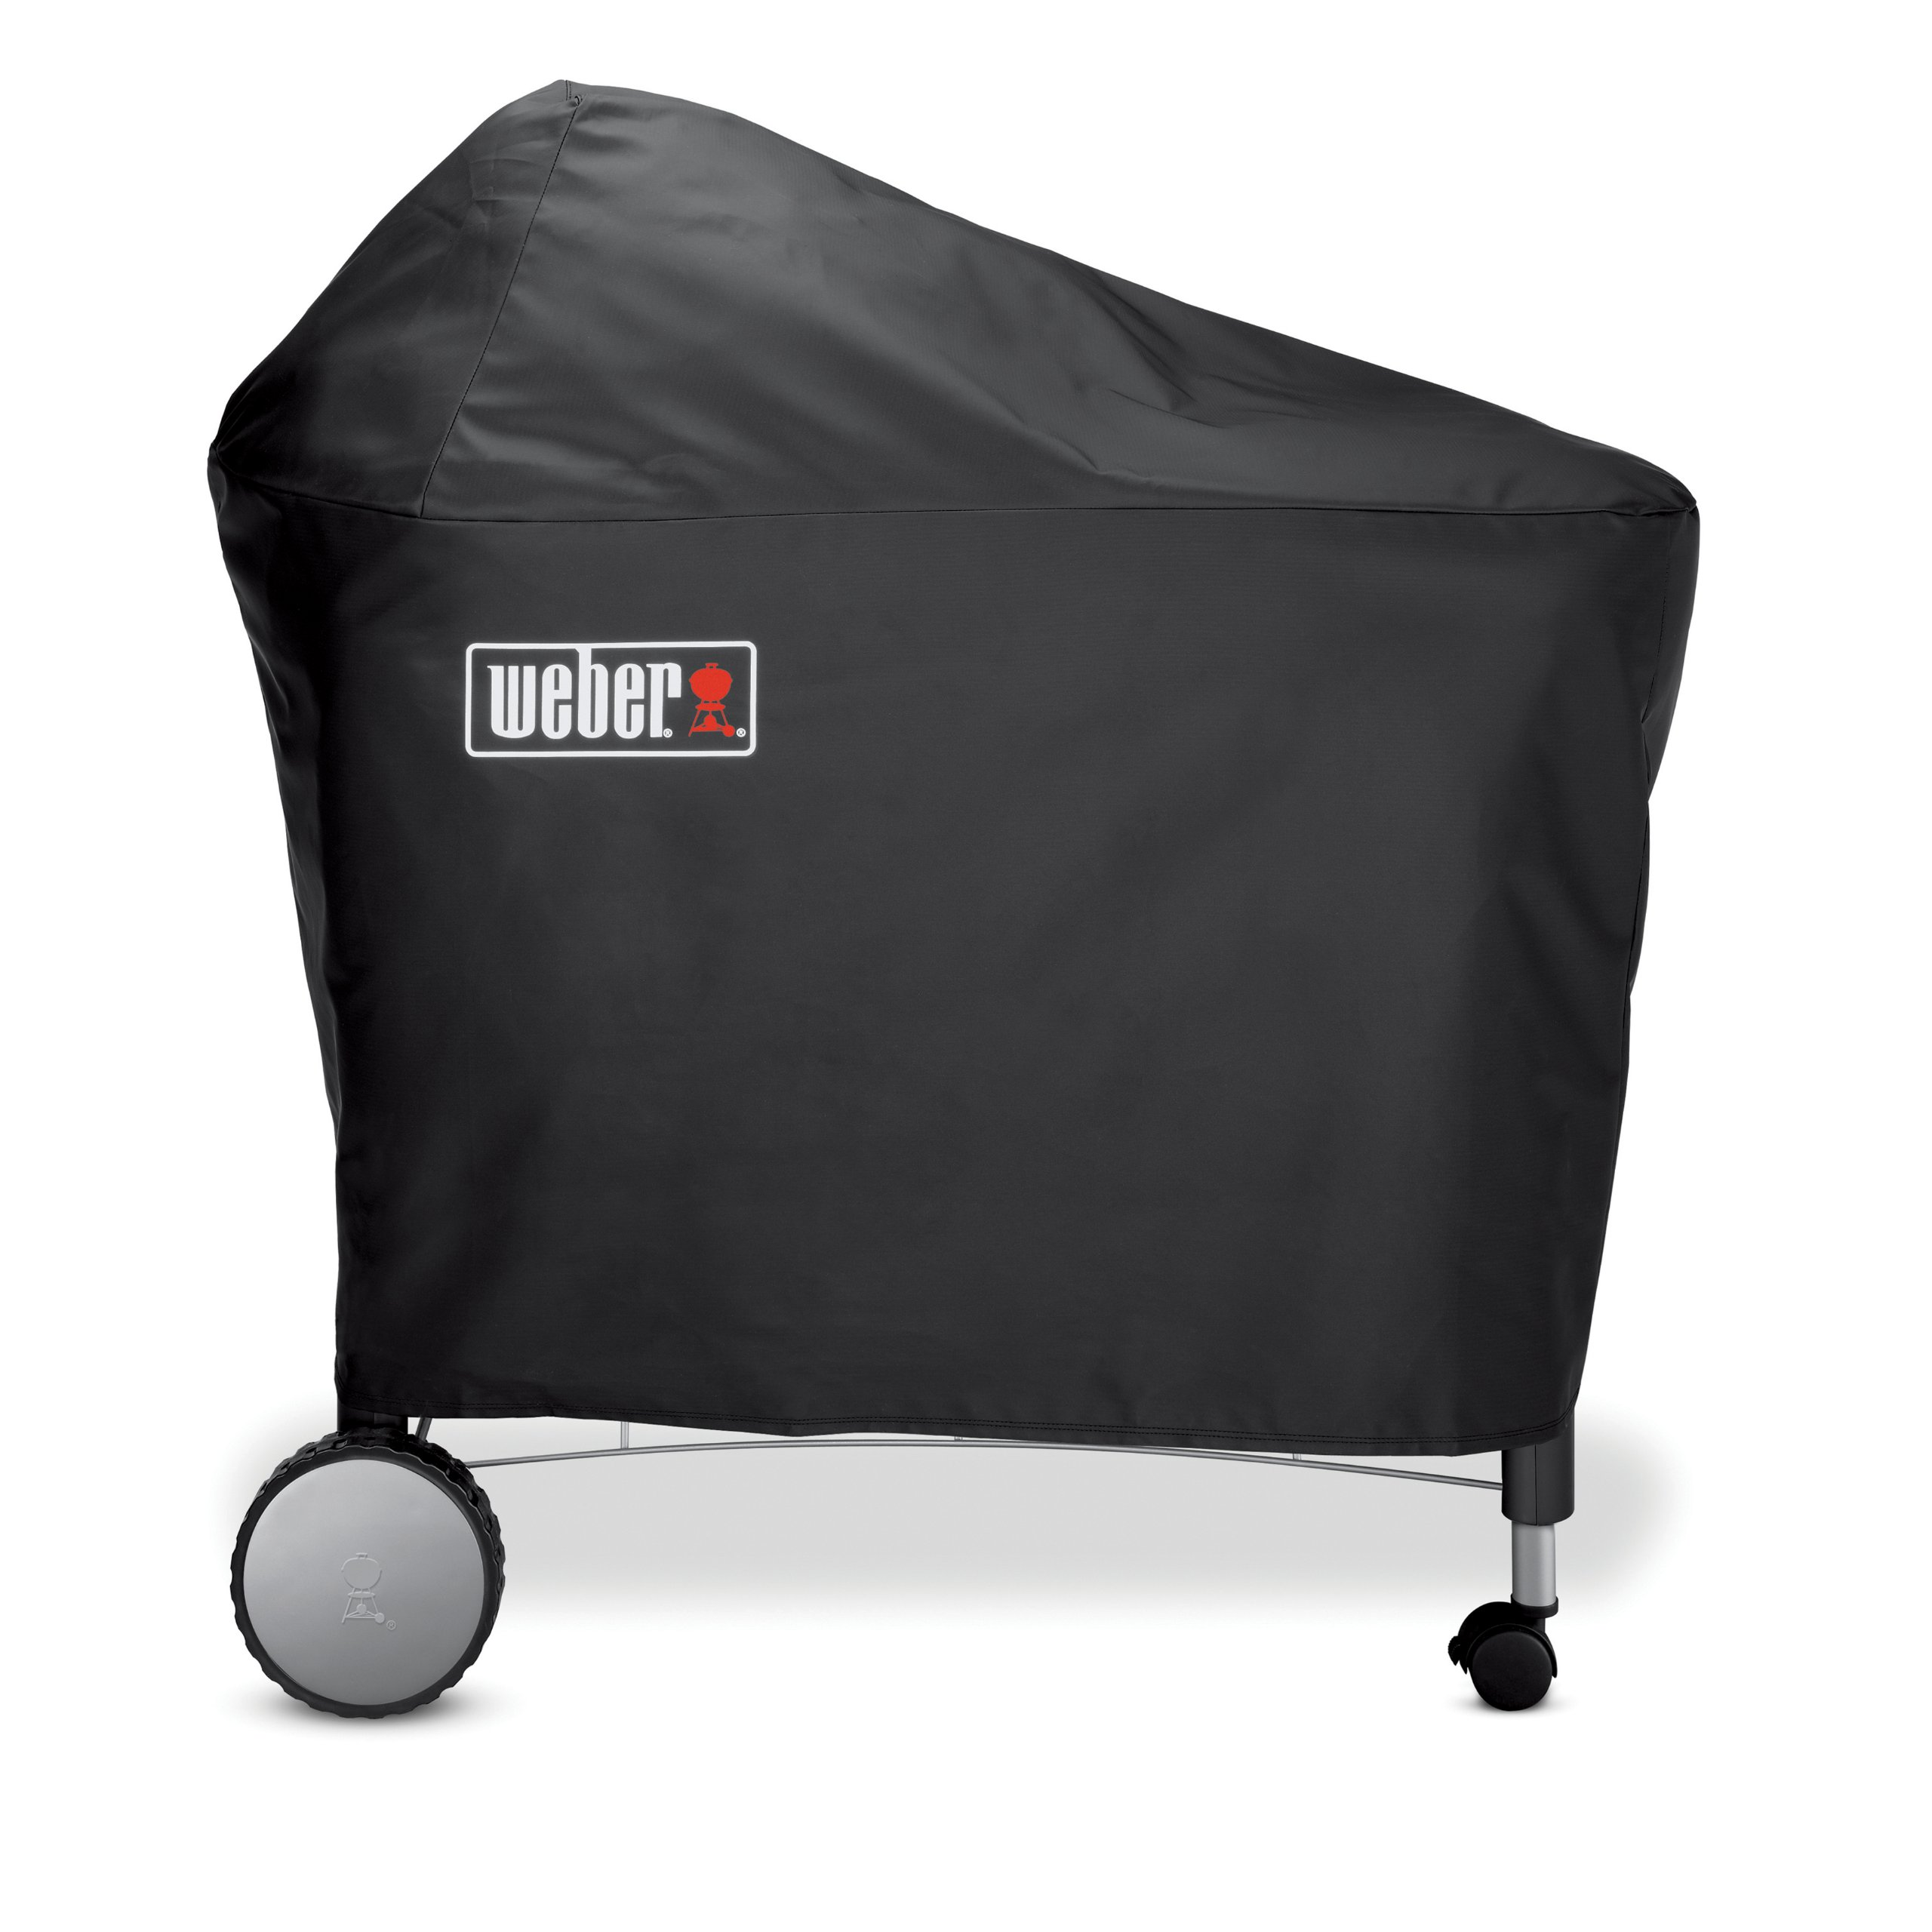 weber 7455 premium cover fits weber performer grills ebay. Black Bedroom Furniture Sets. Home Design Ideas